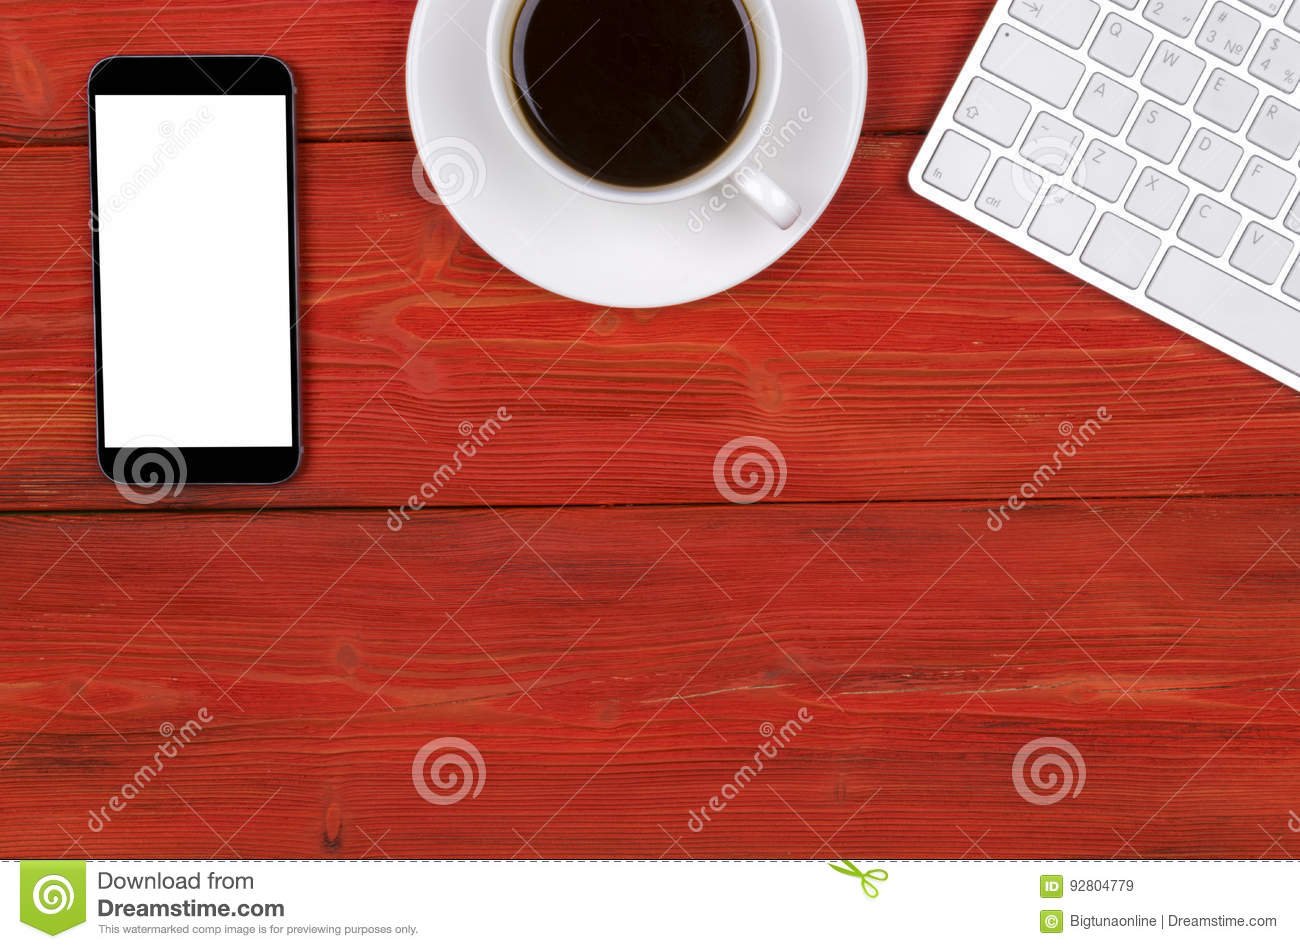 Office desk with copy space. Digital devices wireless keyboard, mouse and tablet computer with empty screen on red wooden table w